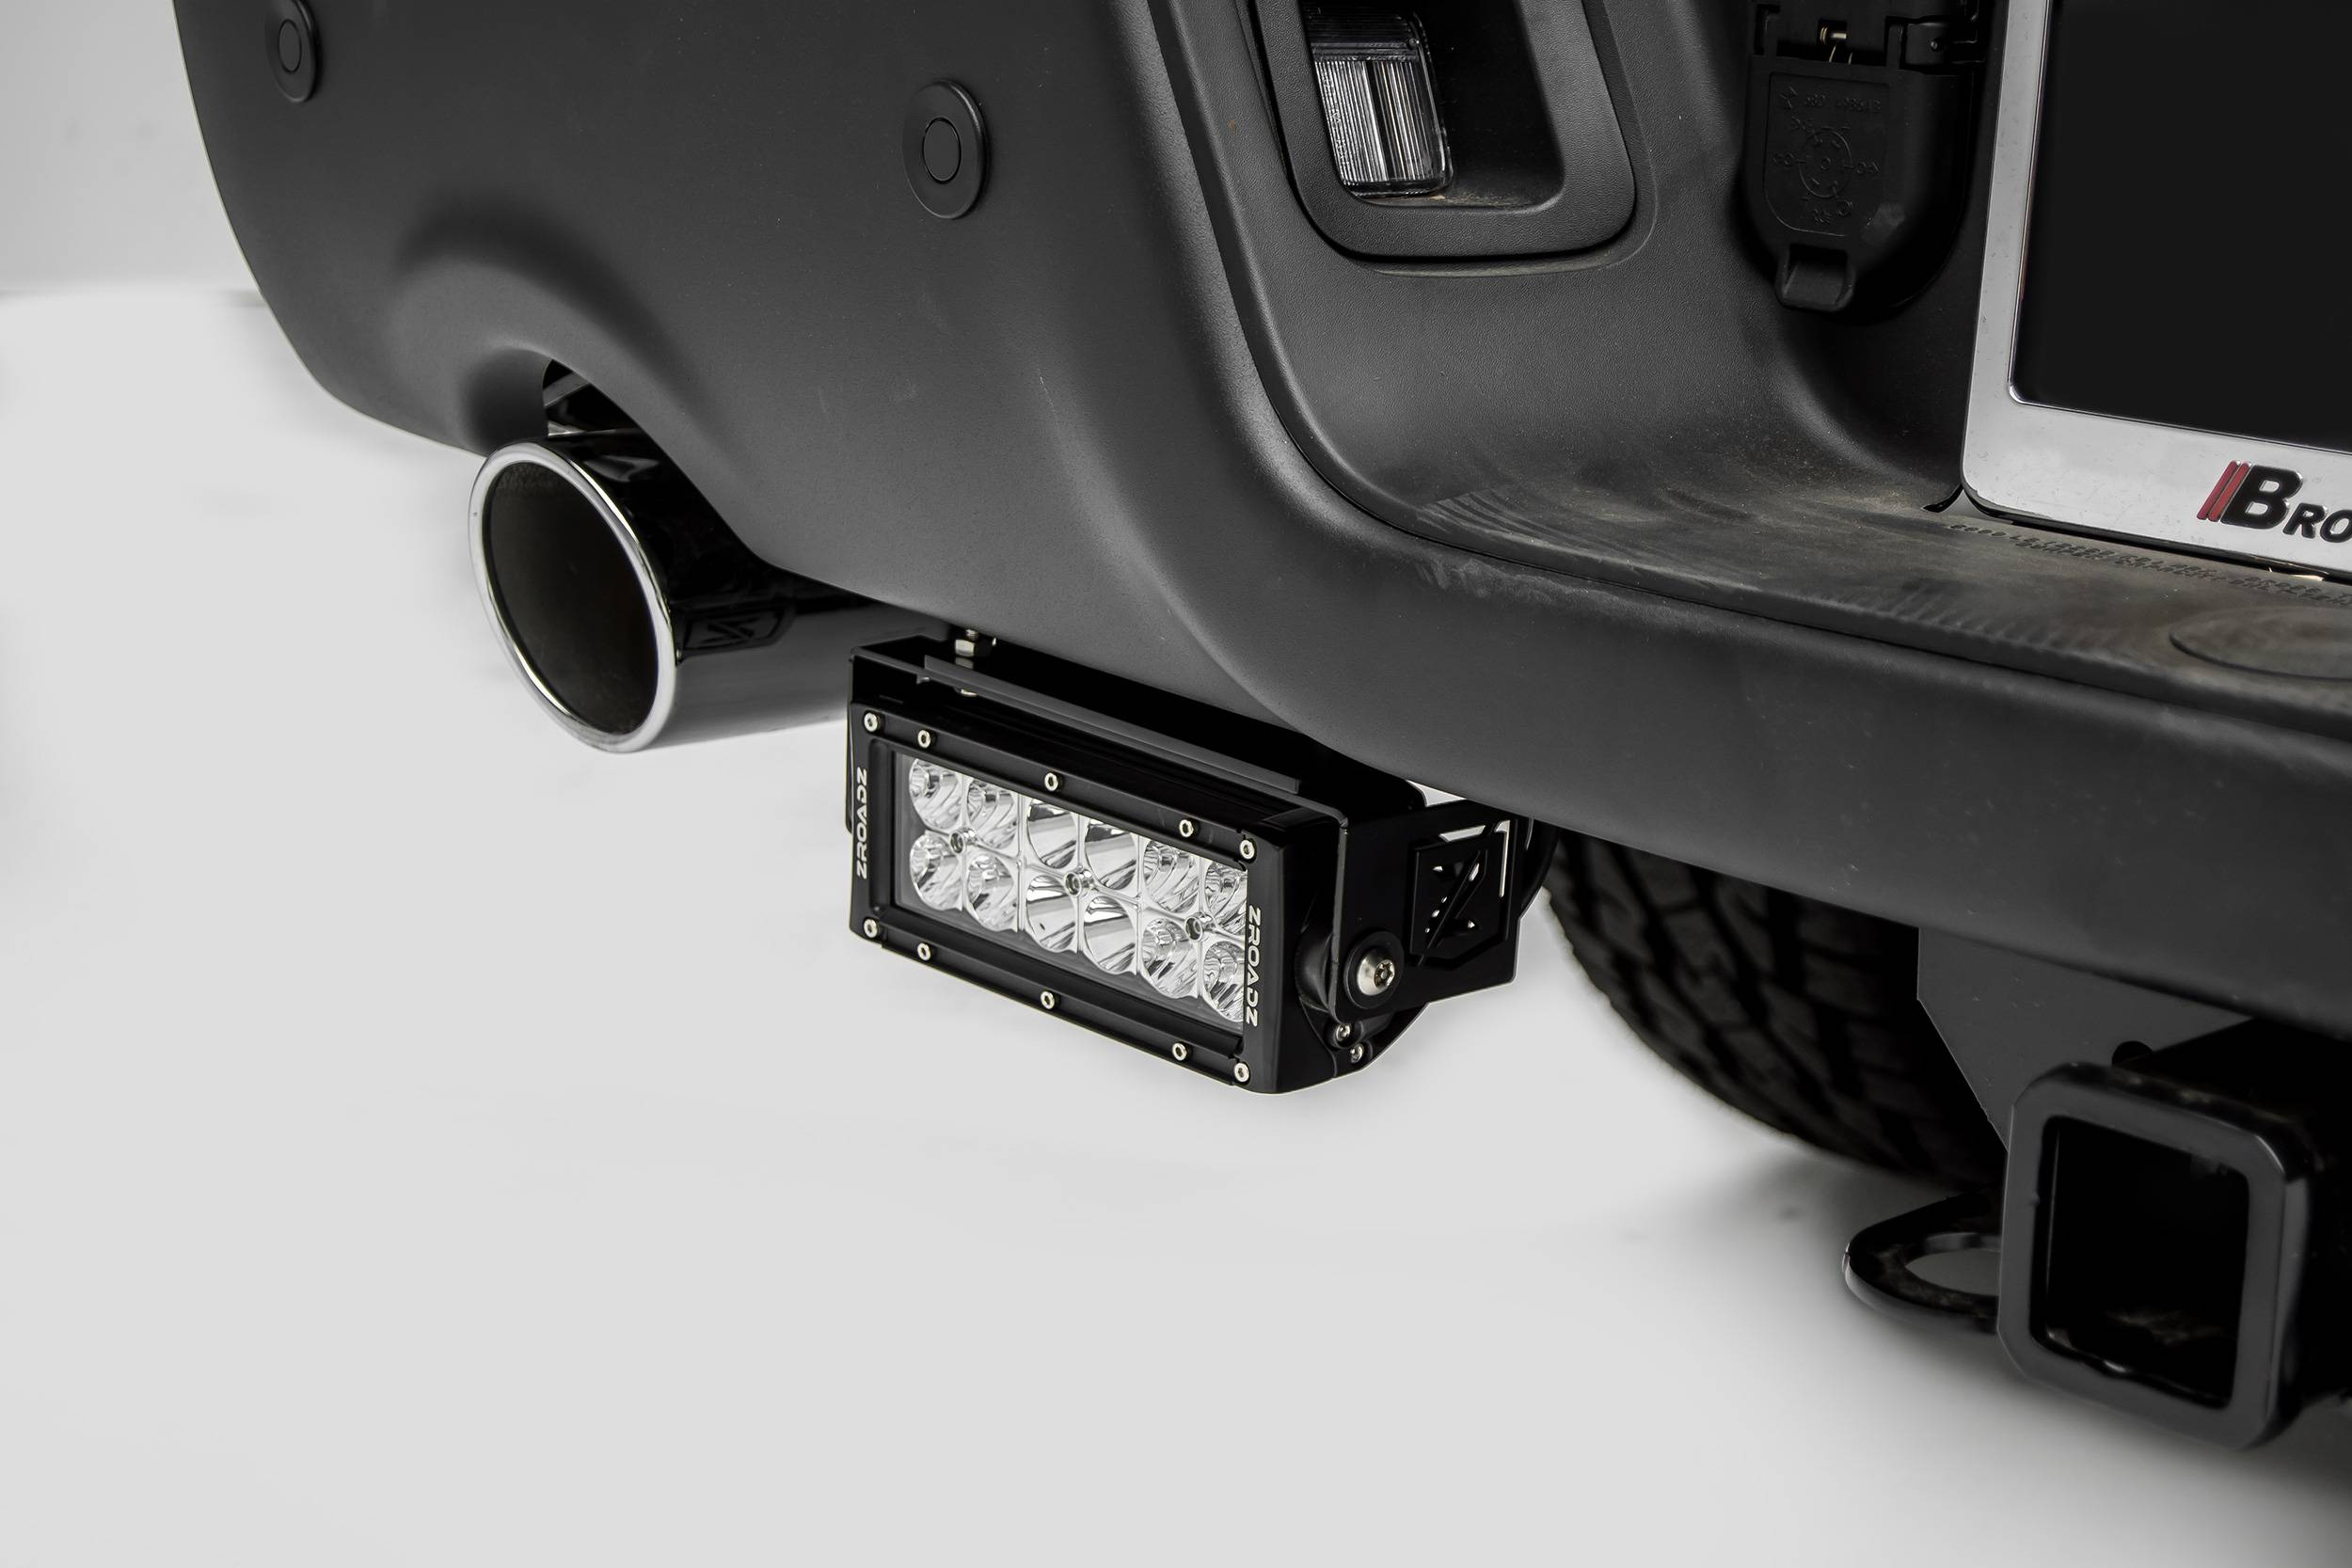 2015-2018 Ram Rebel Rear Bumper LED Kit, Incl. (2) 6 Inch LED Straight Double Row Light Bars - PN #Z384551-KIT